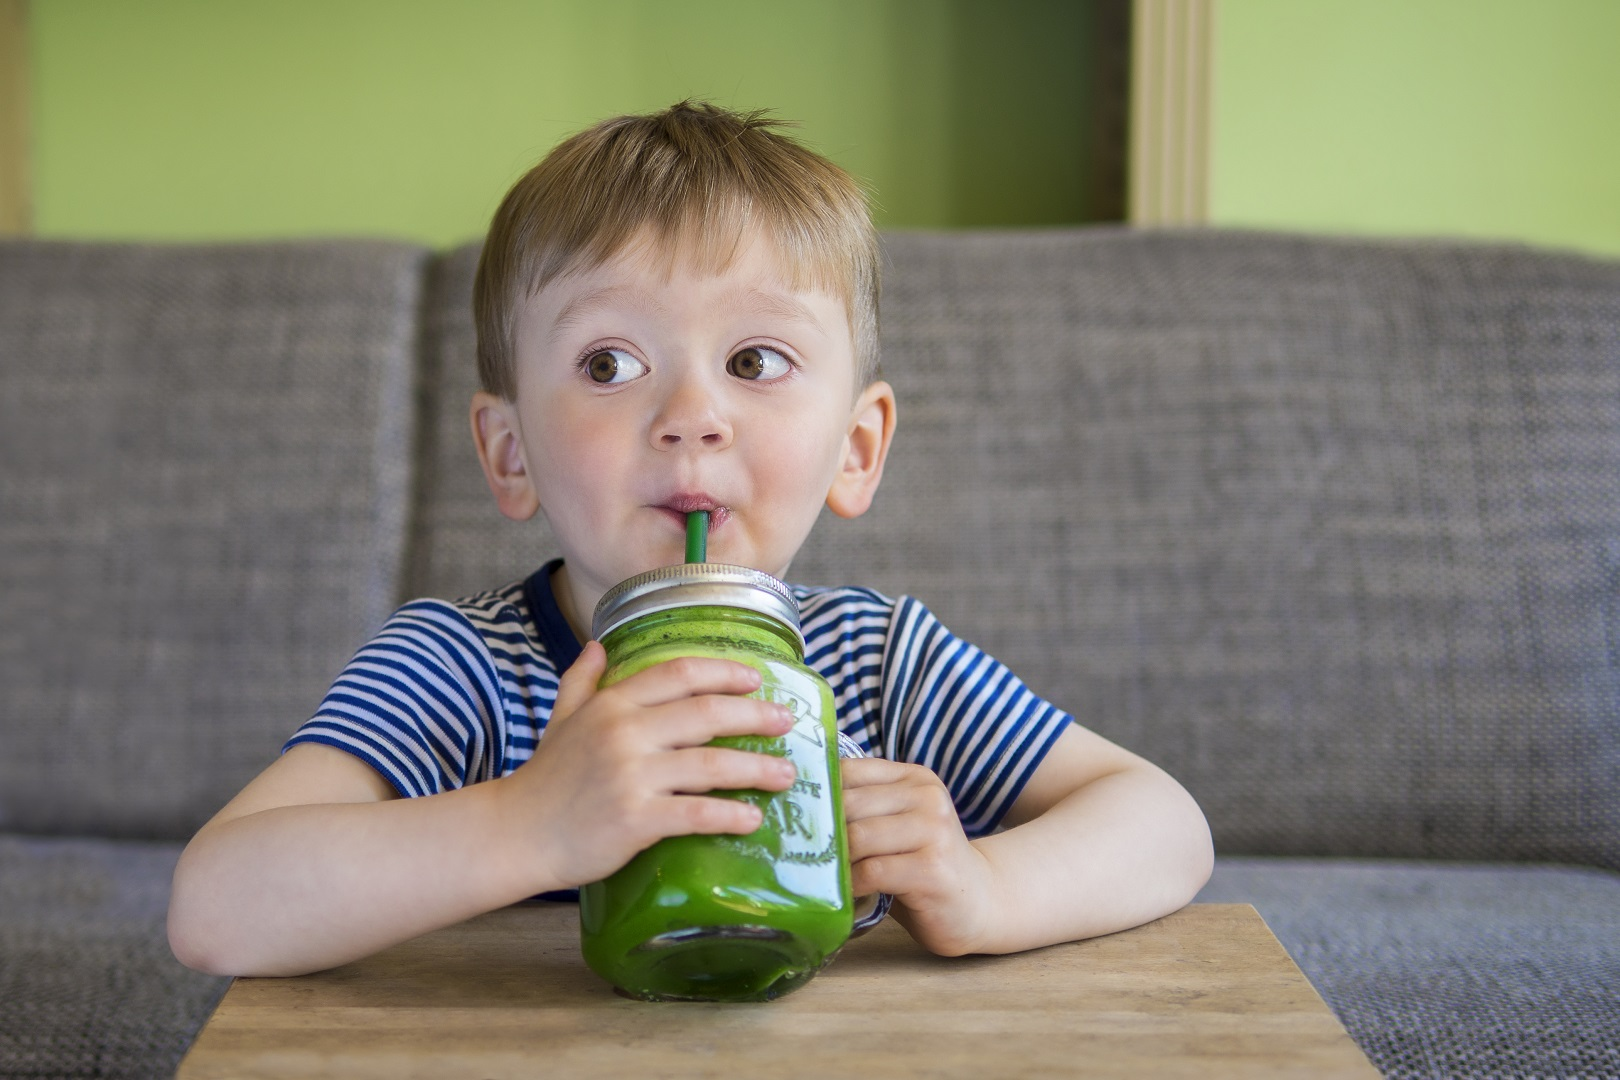 Young Boy Sipping Green Smoothie From Straw In Mason Jar